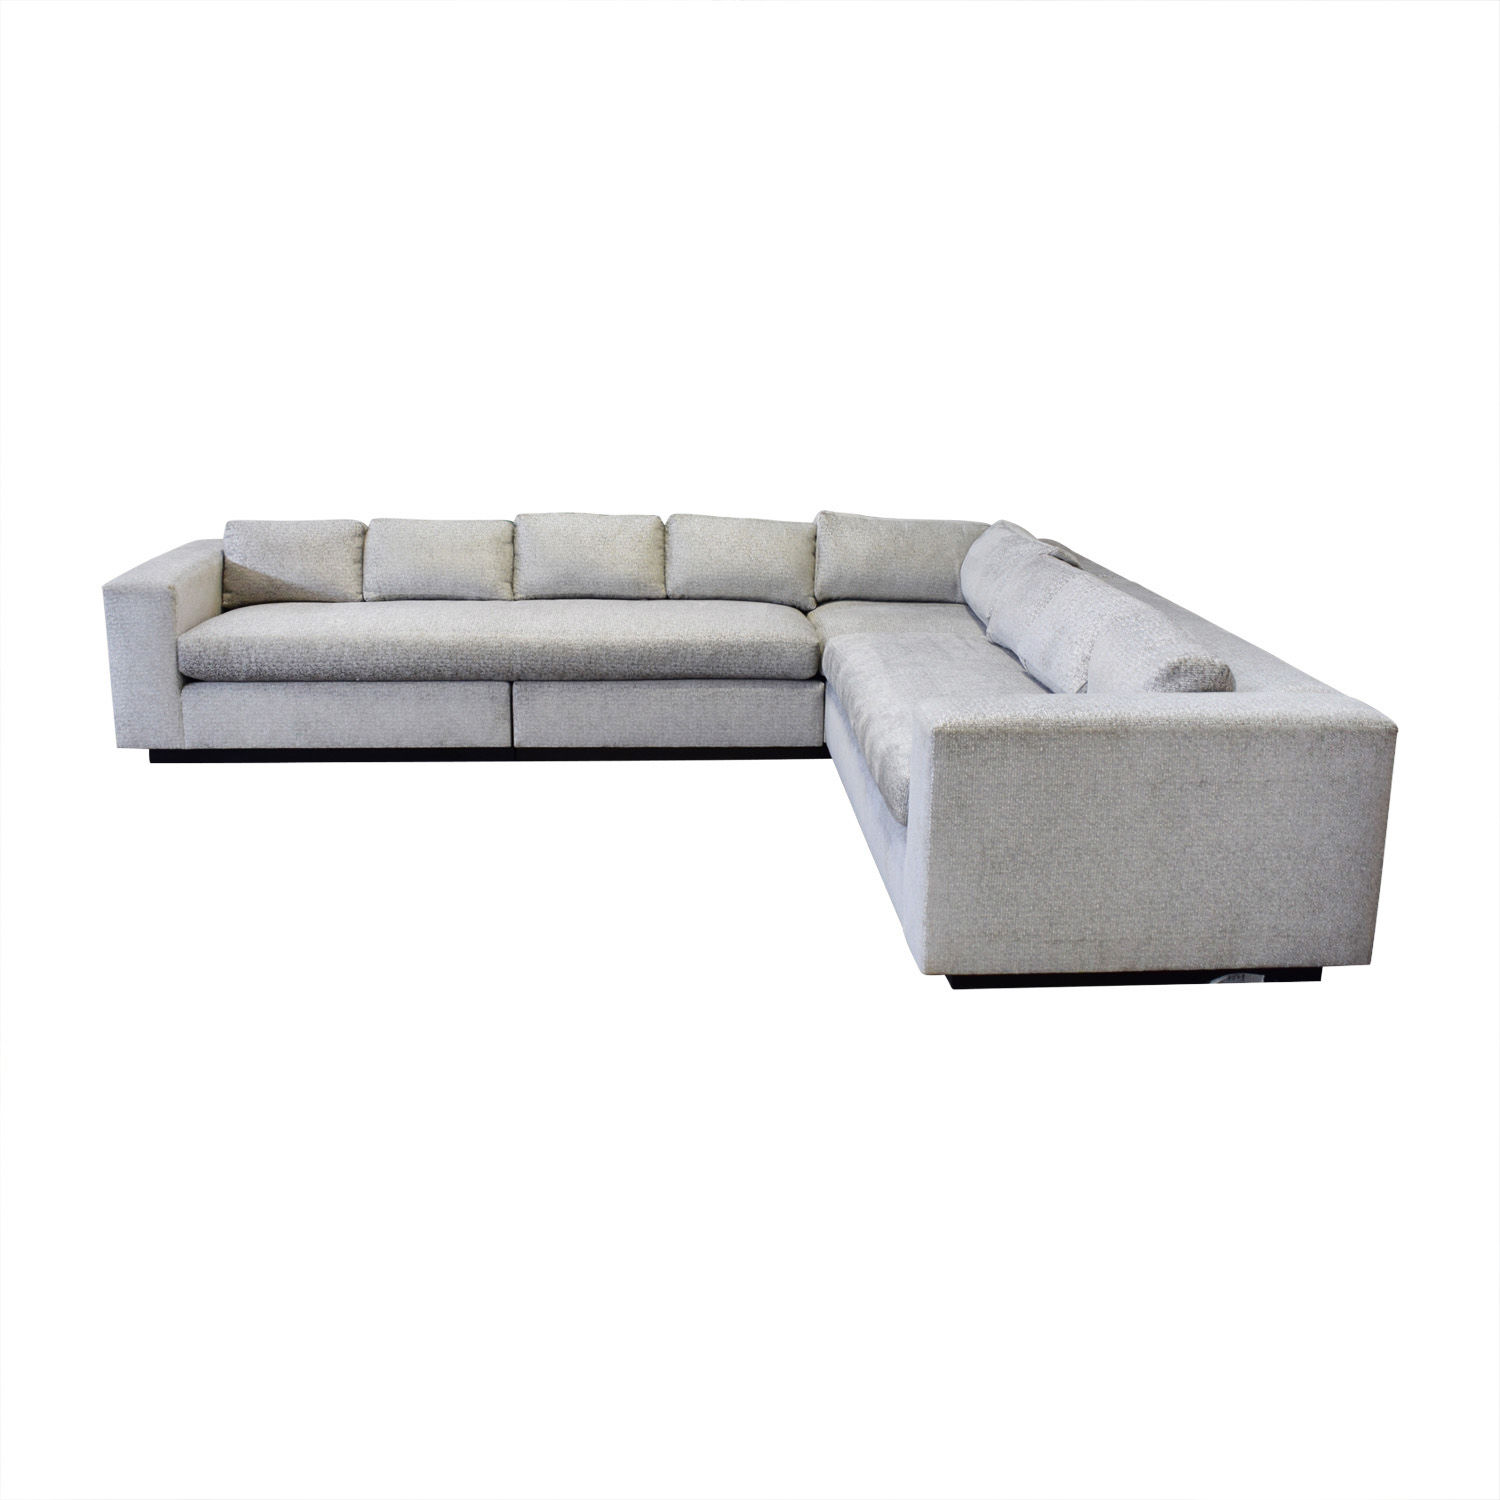 Ferrell Mittman Ferrell Mittman Cooper Sectional Sofa on sale